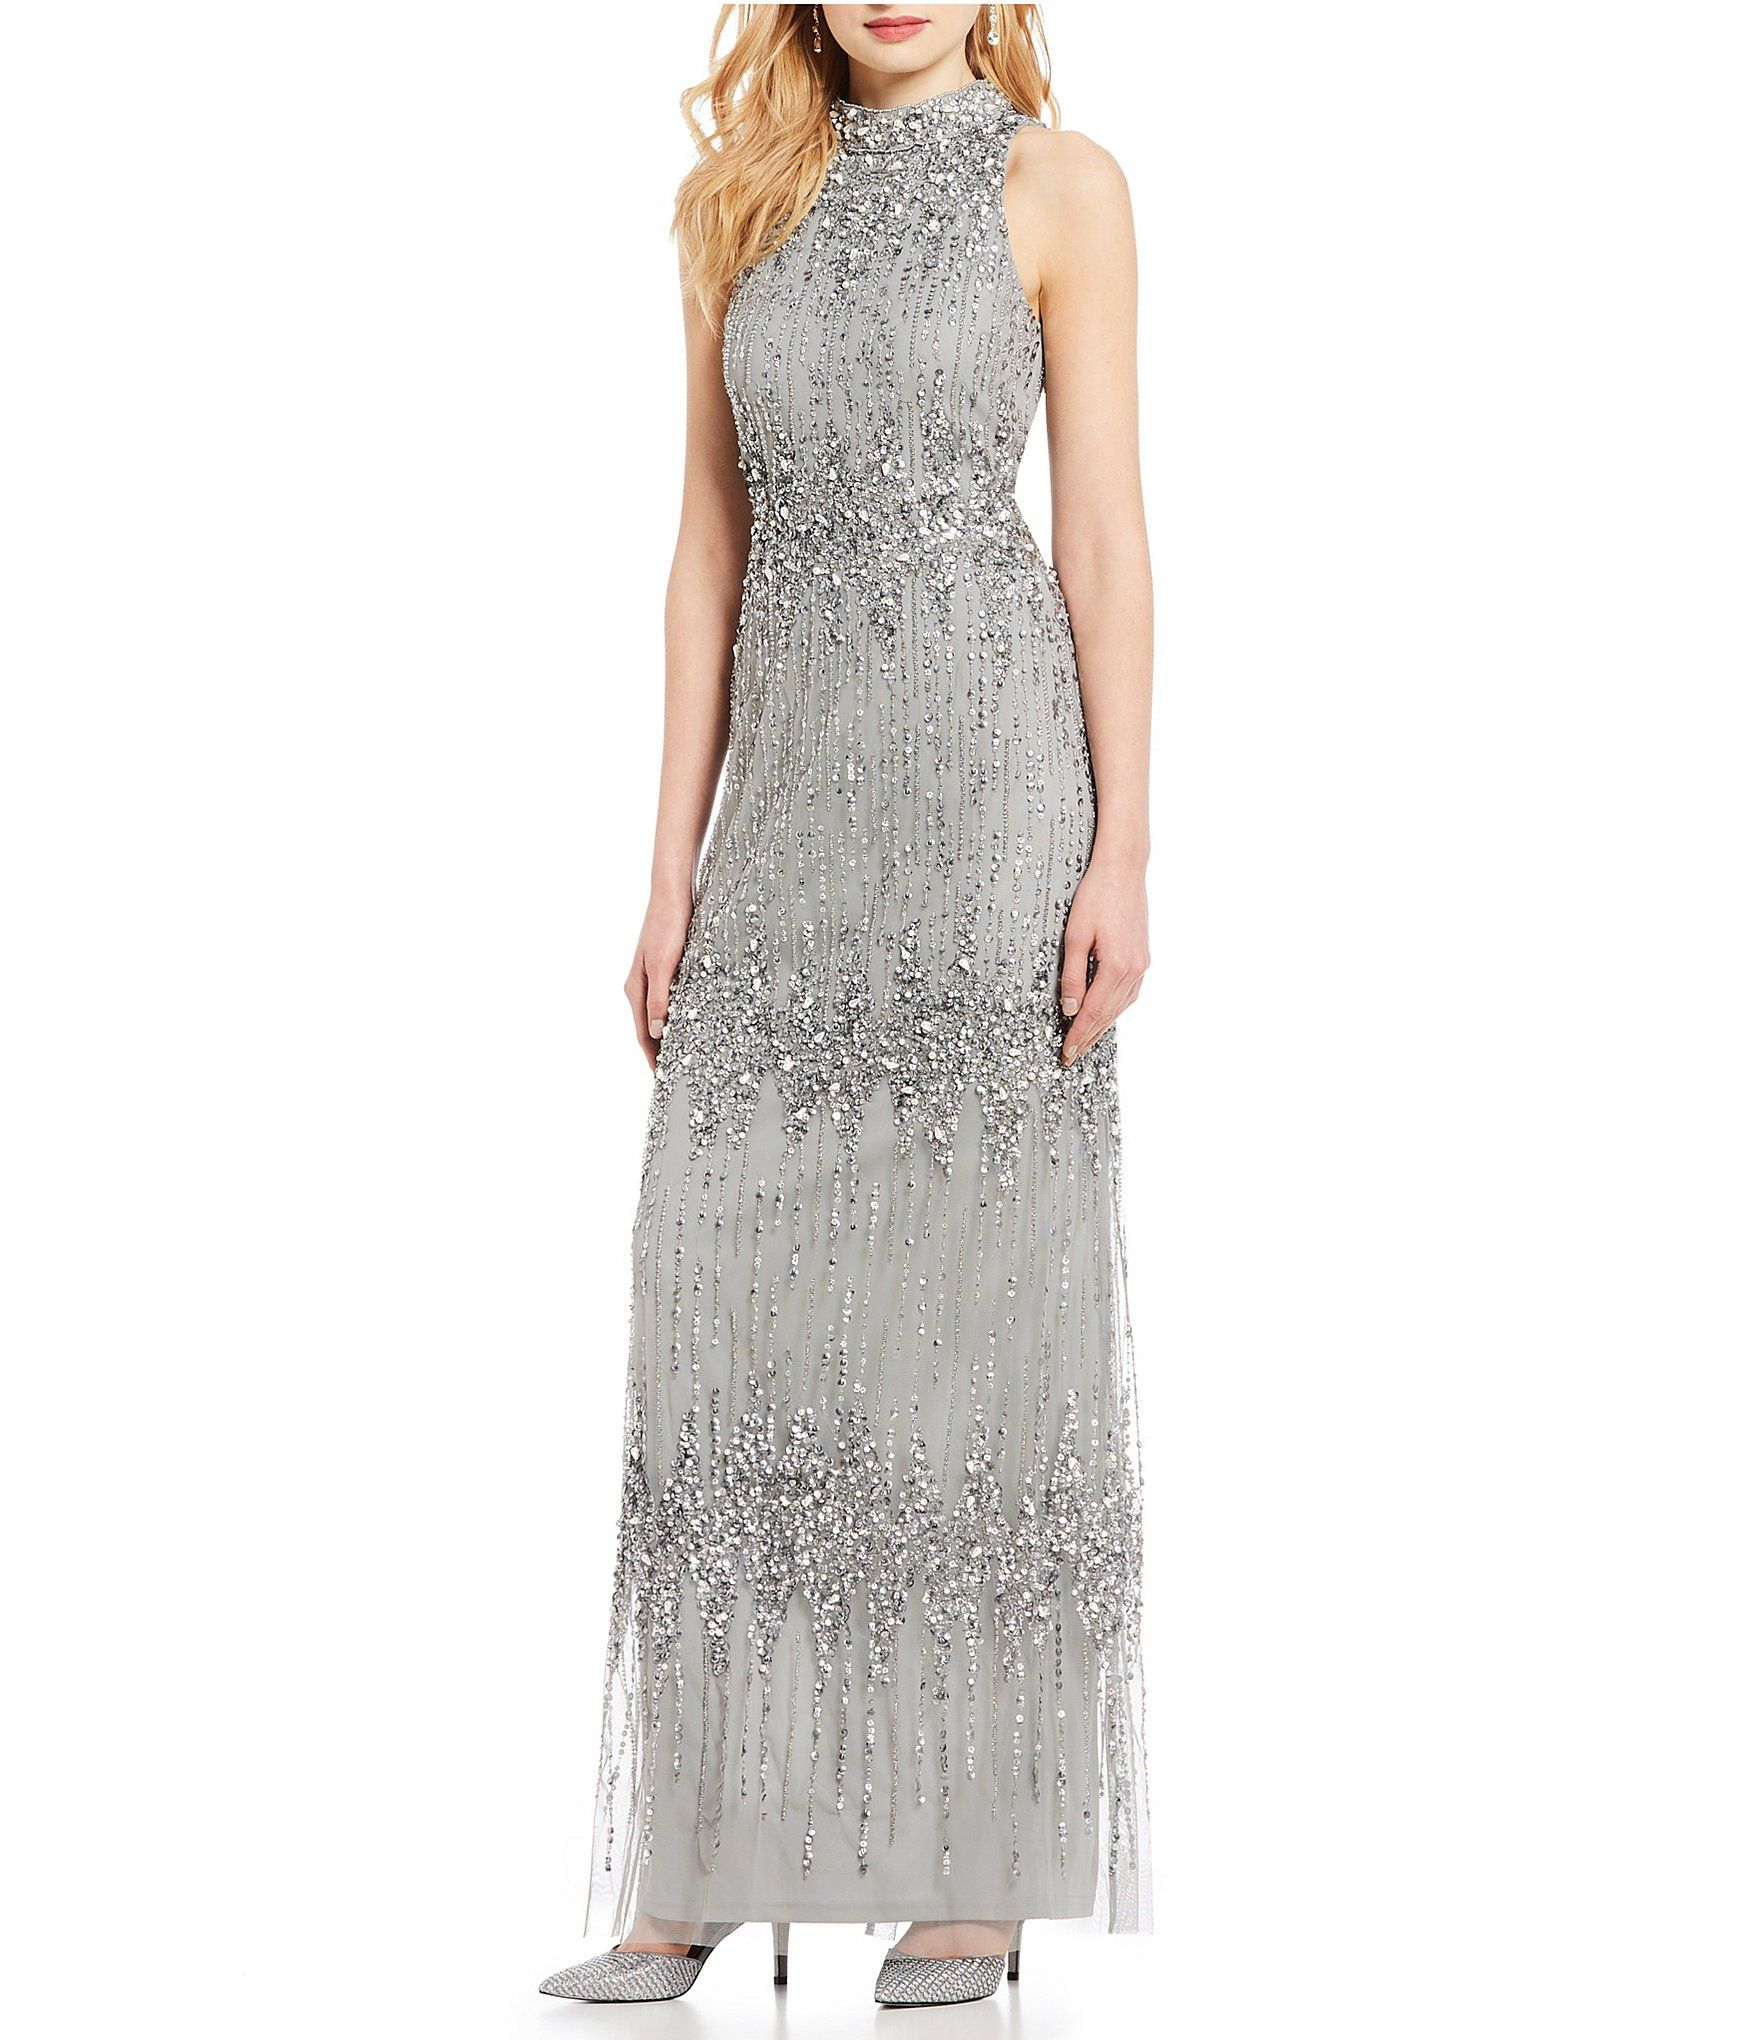 a22eef2437b Shop for Adrianna Papell Beaded Halter Gown at Dillards.com. Visit  Dillards.com to find clothing